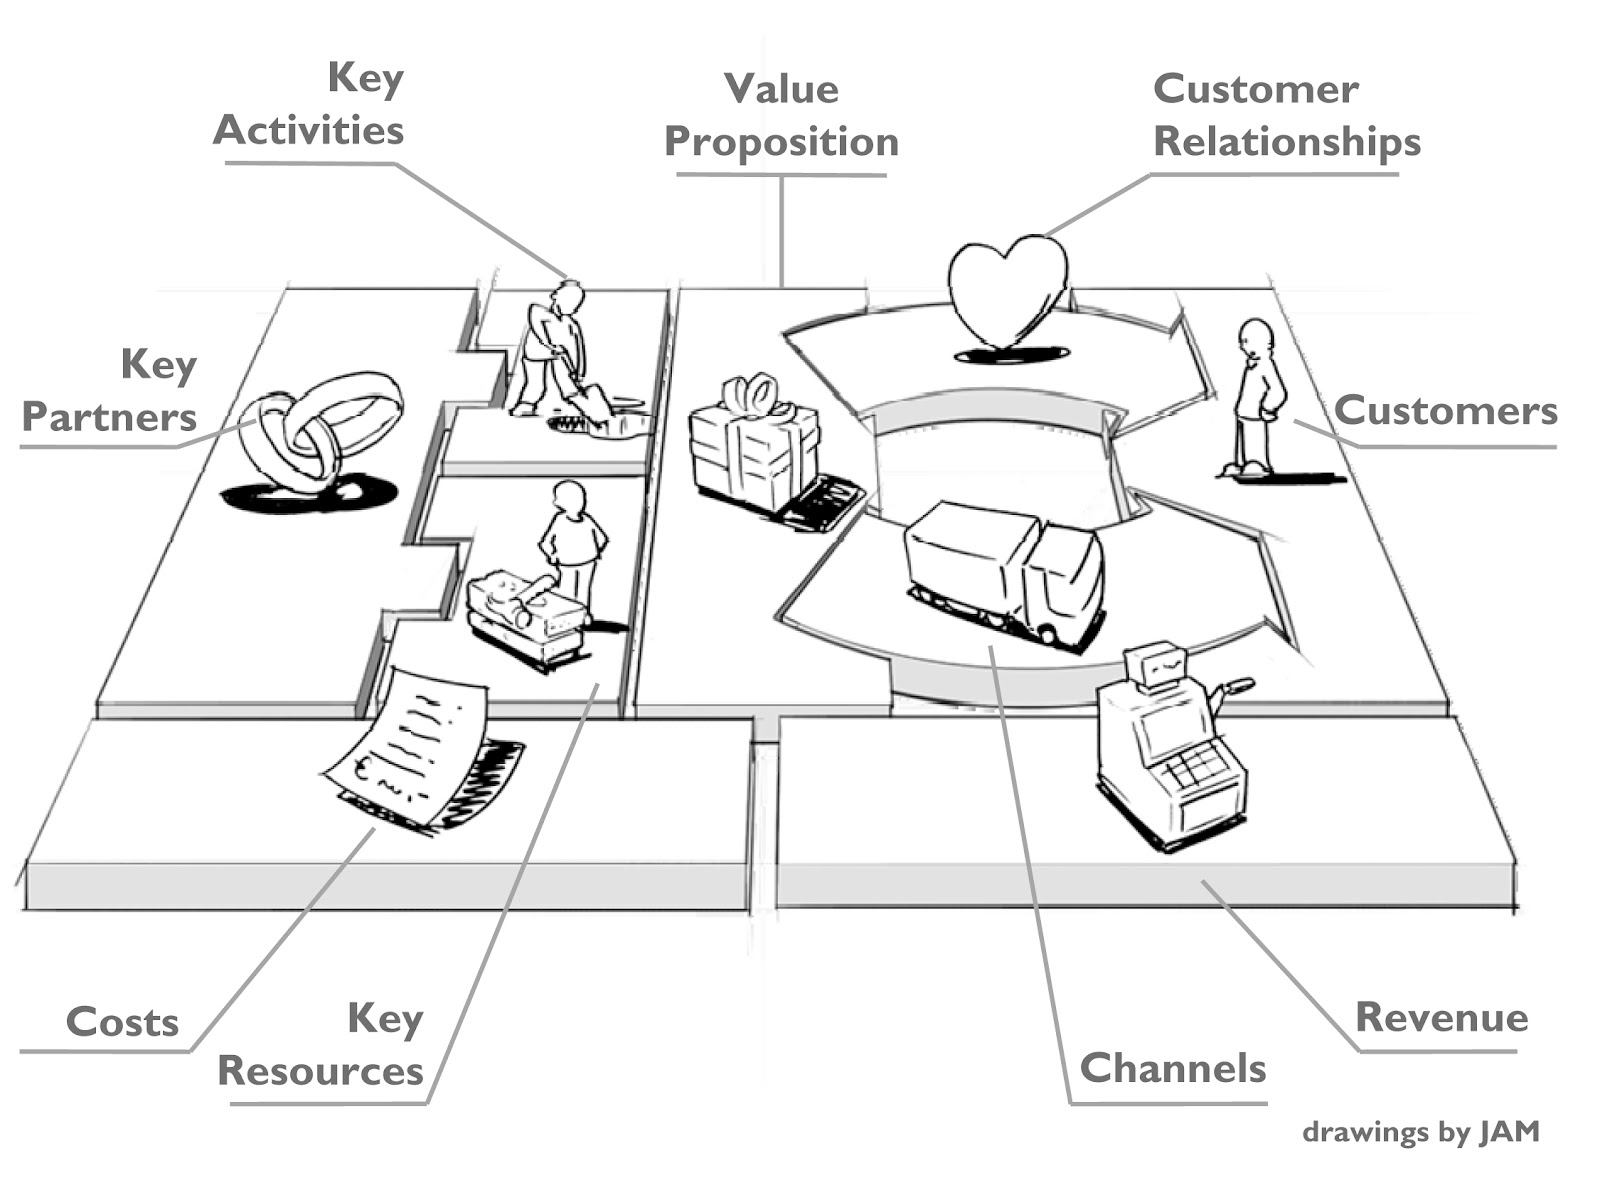 business-model-canvas-image.jpg